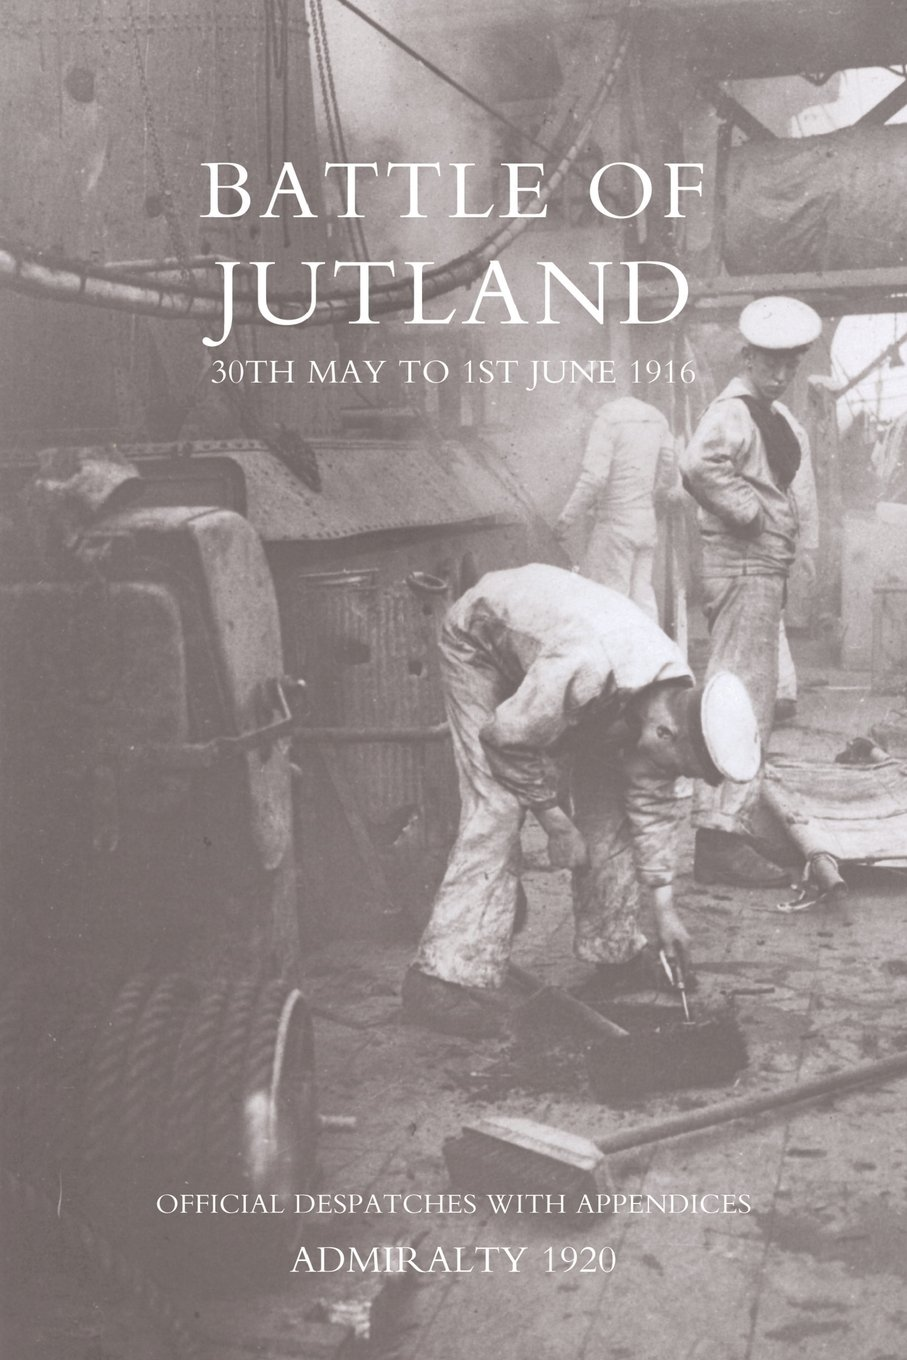 BATTLE OF JUTLAND 30TH MAY TO 1ST JUNE1916 - OFFICIAL DESPATCHES WITH APPENDICES pdf epub